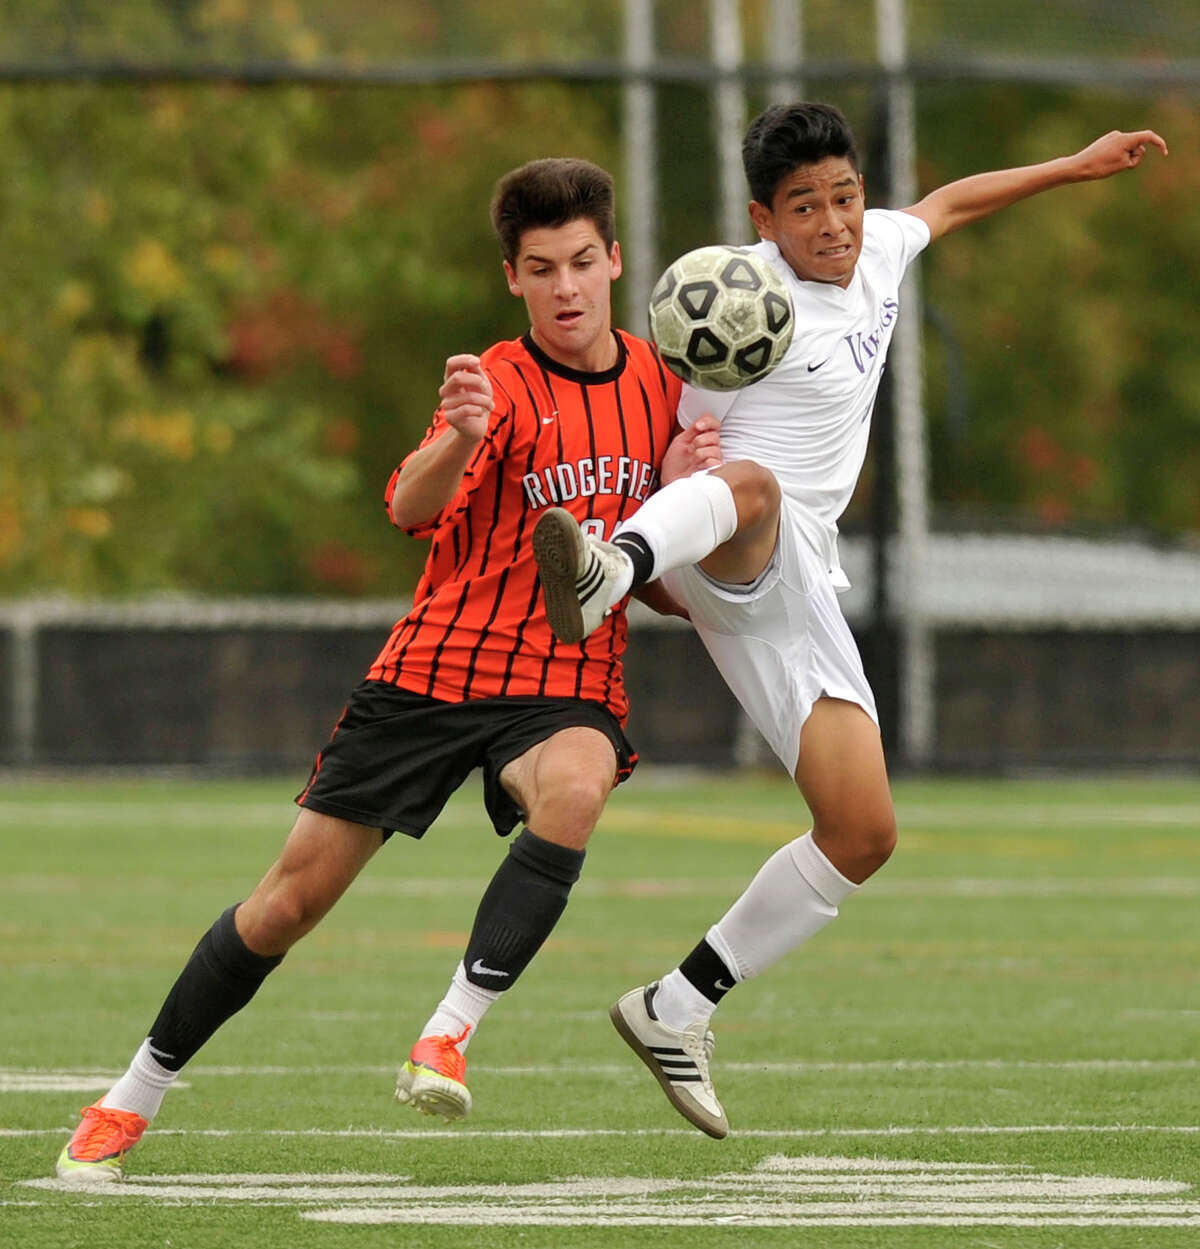 Ridgefield's Andrew Papa and Westhill's Hector Cruz compete for the loose ball during their soccer game at Westhill High School in Stamford, Conn., on Monday, Oct. 13, 2014. Ridgefield and Westhill played to a 2-2 tie.